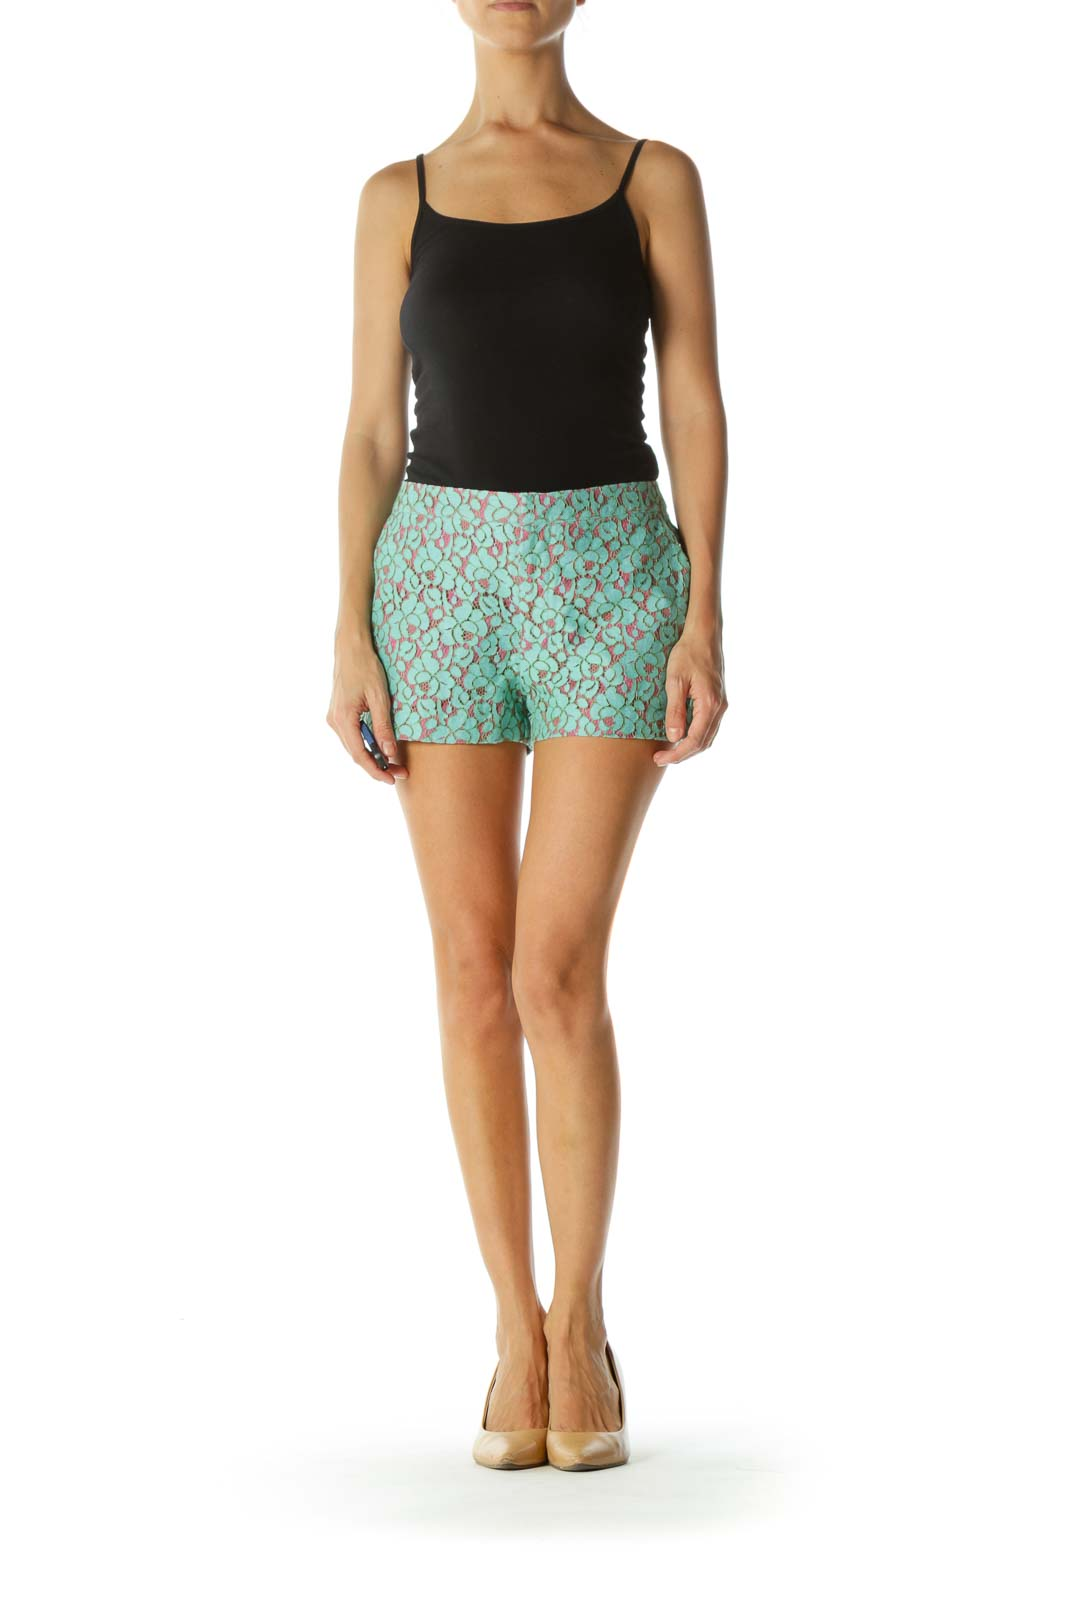 Teal and Pink Lace Shorts